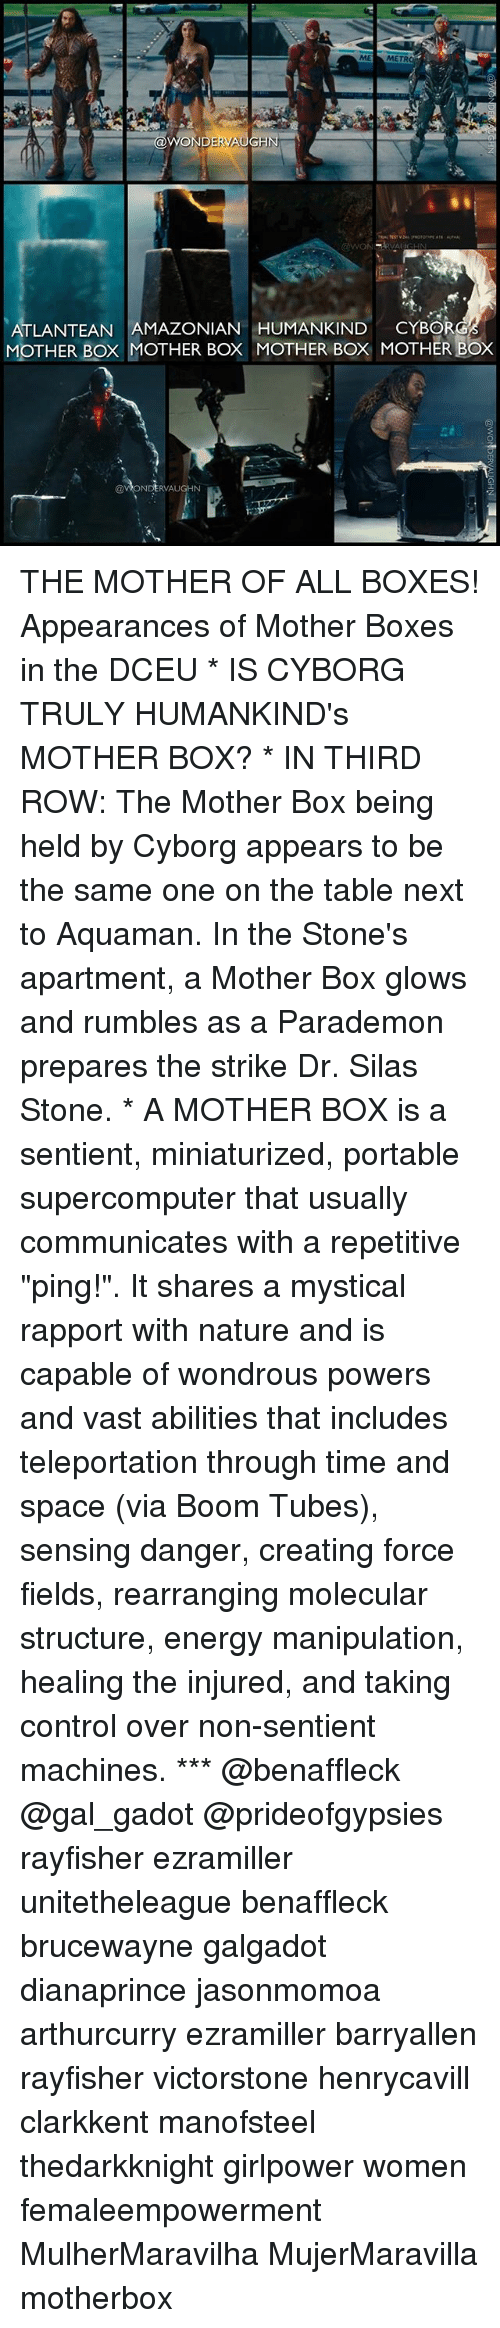 """Energy, Memes, and Control: ME MET  ATLANTEAN AMAZONIAN HUMANKIND CYBOR  MOTHER BOx MOTHER Box MOTHER BOX MOTHER BOX  @VONDERVAUGHN THE MOTHER OF ALL BOXES! Appearances of Mother Boxes in the DCEU * IS CYBORG TRULY HUMANKIND's MOTHER BOX? * IN THIRD ROW: The Mother Box being held by Cyborg appears to be the same one on the table next to Aquaman. In the Stone's apartment, a Mother Box glows and rumbles as a Parademon prepares the strike Dr. Silas Stone. * A MOTHER BOX is a sentient, miniaturized, portable supercomputer that usually communicates with a repetitive """"ping!"""". It shares a mystical rapport with nature and is capable of wondrous powers and vast abilities that includes teleportation through time and space (via Boom Tubes), sensing danger, creating force fields, rearranging molecular structure, energy manipulation, healing the injured, and taking control over non-sentient machines. *** @benaffleck @gal_gadot @prideofgypsies rayfisher ezramiller unitetheleague benaffleck brucewayne galgadot dianaprince jasonmomoa arthurcurry ezramiller barryallen rayfisher victorstone henrycavill clarkkent manofsteel thedarkknight girlpower women femaleempowerment MulherMaravilha MujerMaravilla motherbox"""